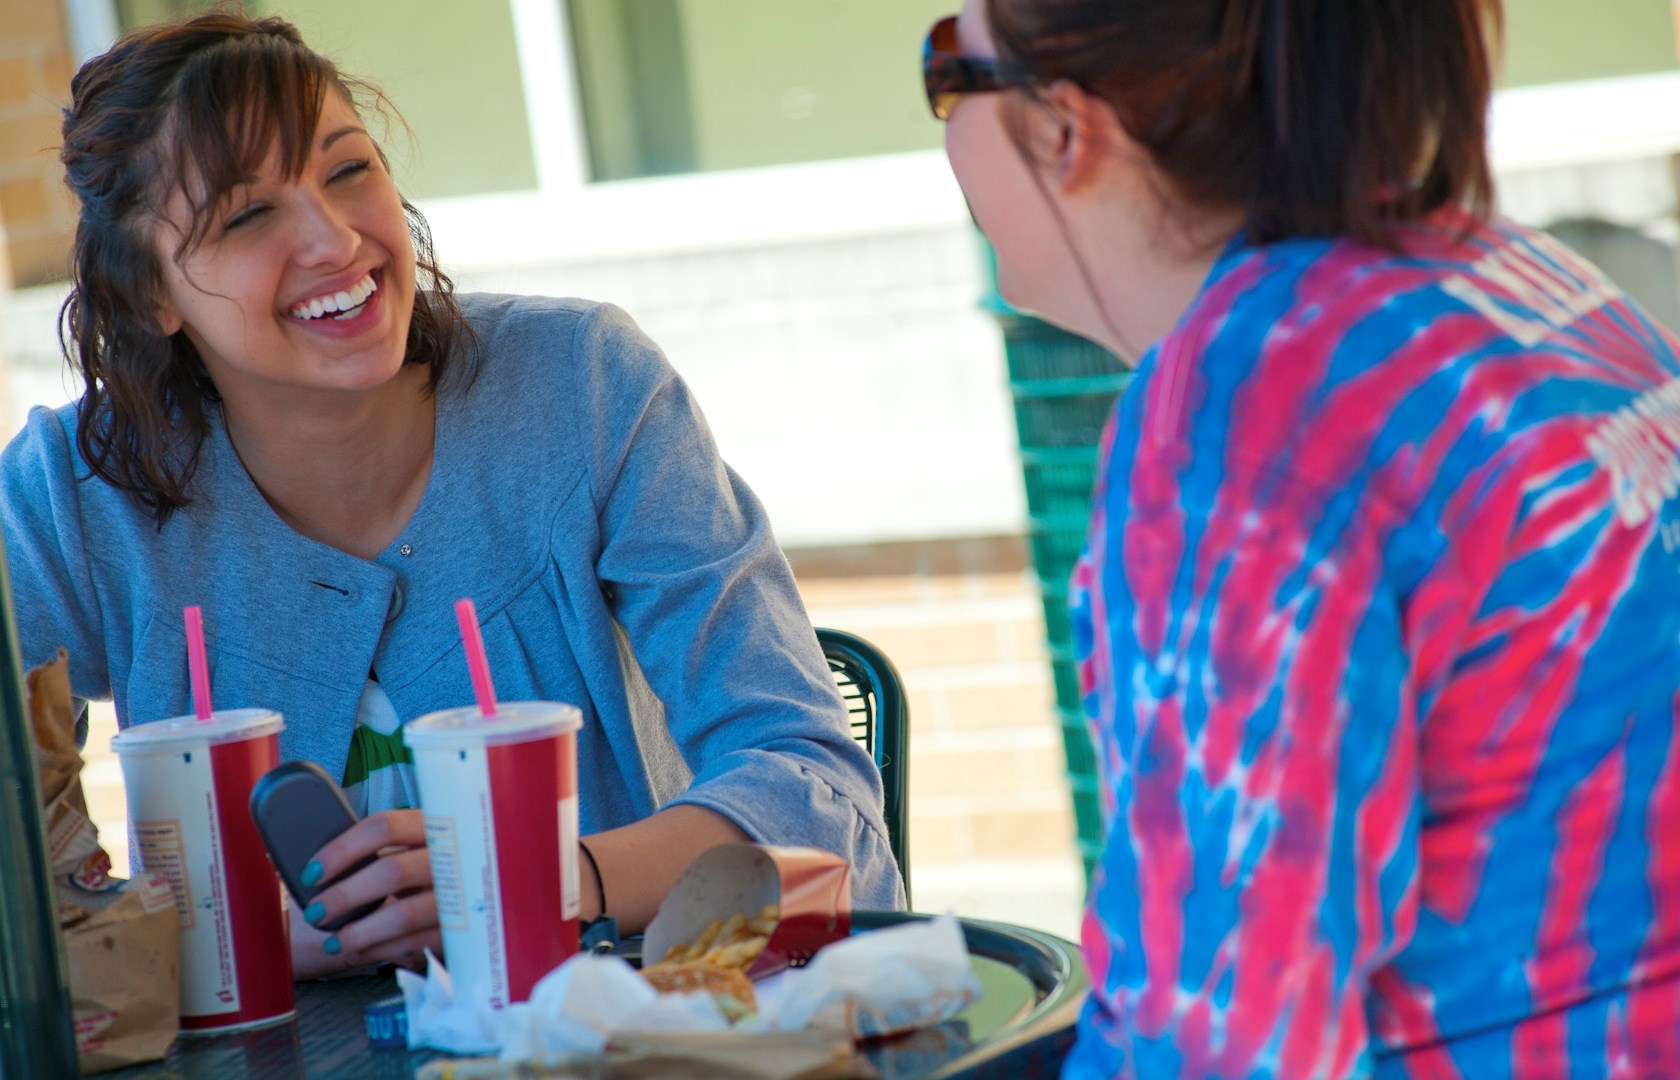 horiz females laughing during at lunch